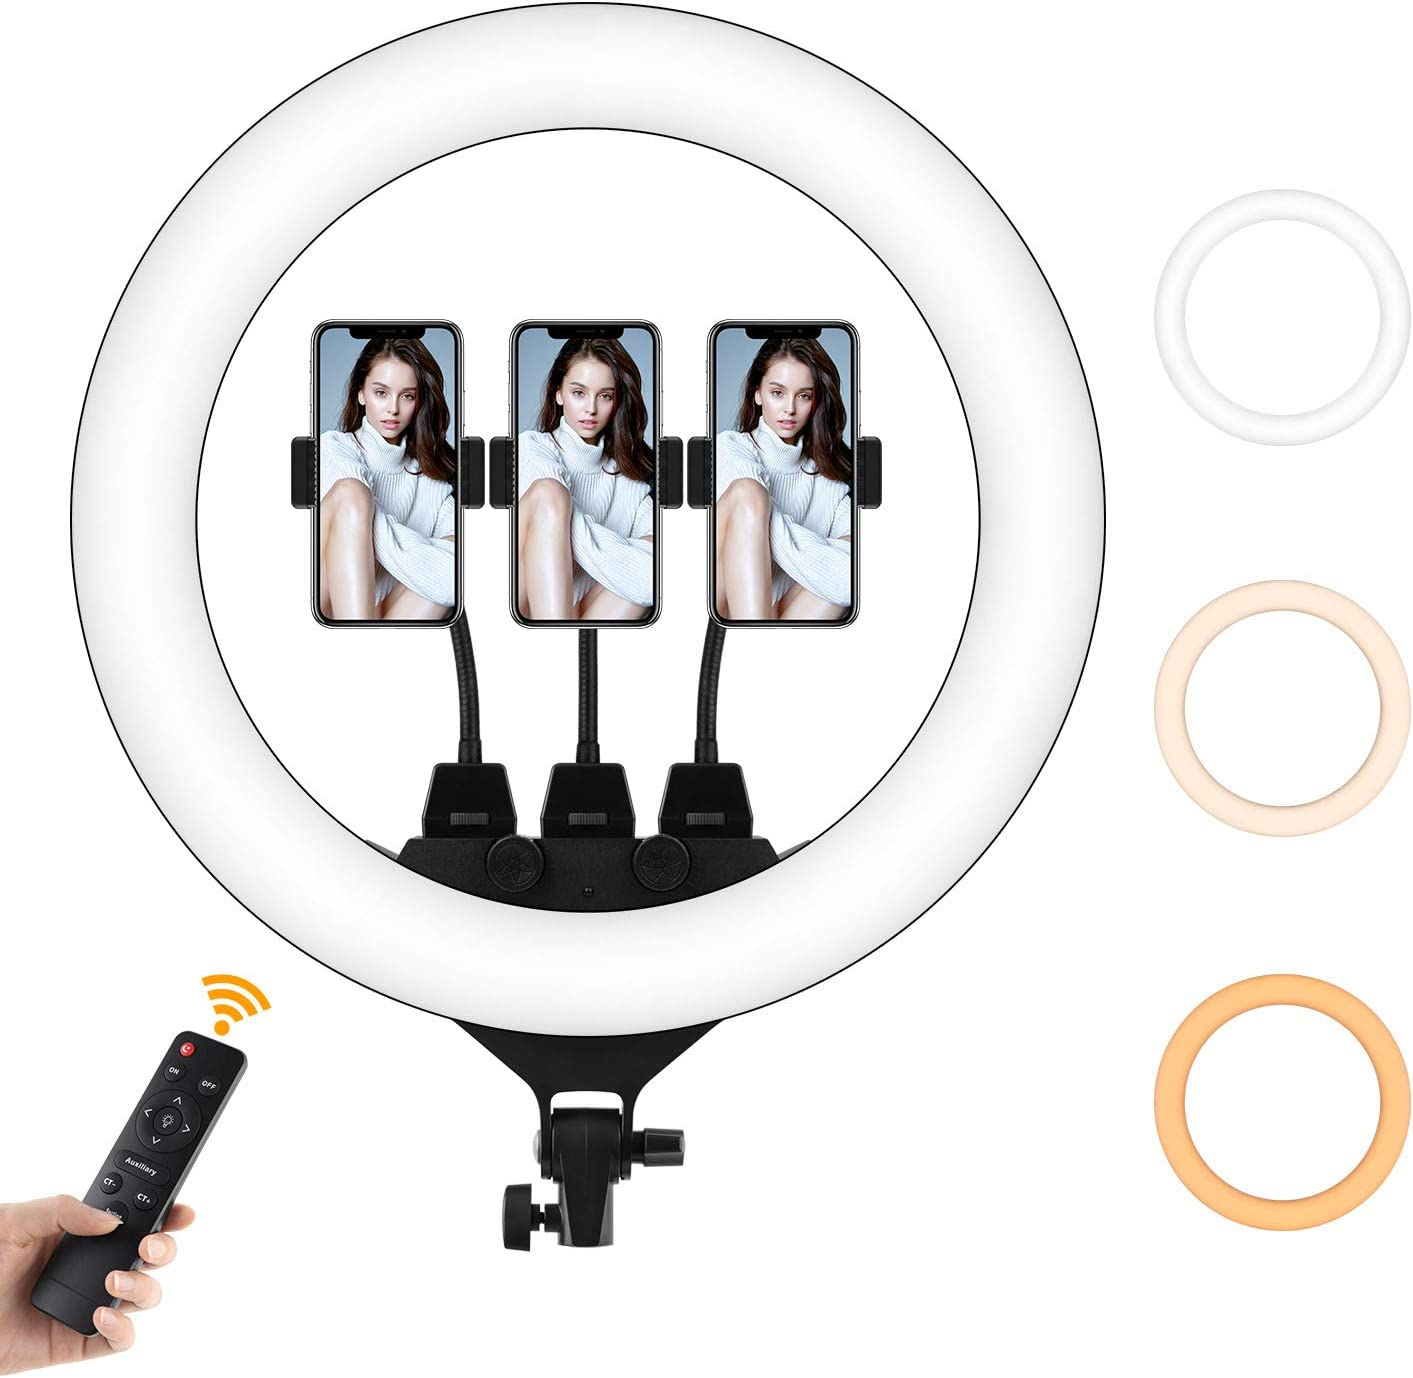 Led Selfie Ring Light Without Tripod Stand - only 18 Inch Ring Light Camera Lamp for iPhone Live Zoom Streaming (Without Tripod, 18 inch Ring Light)